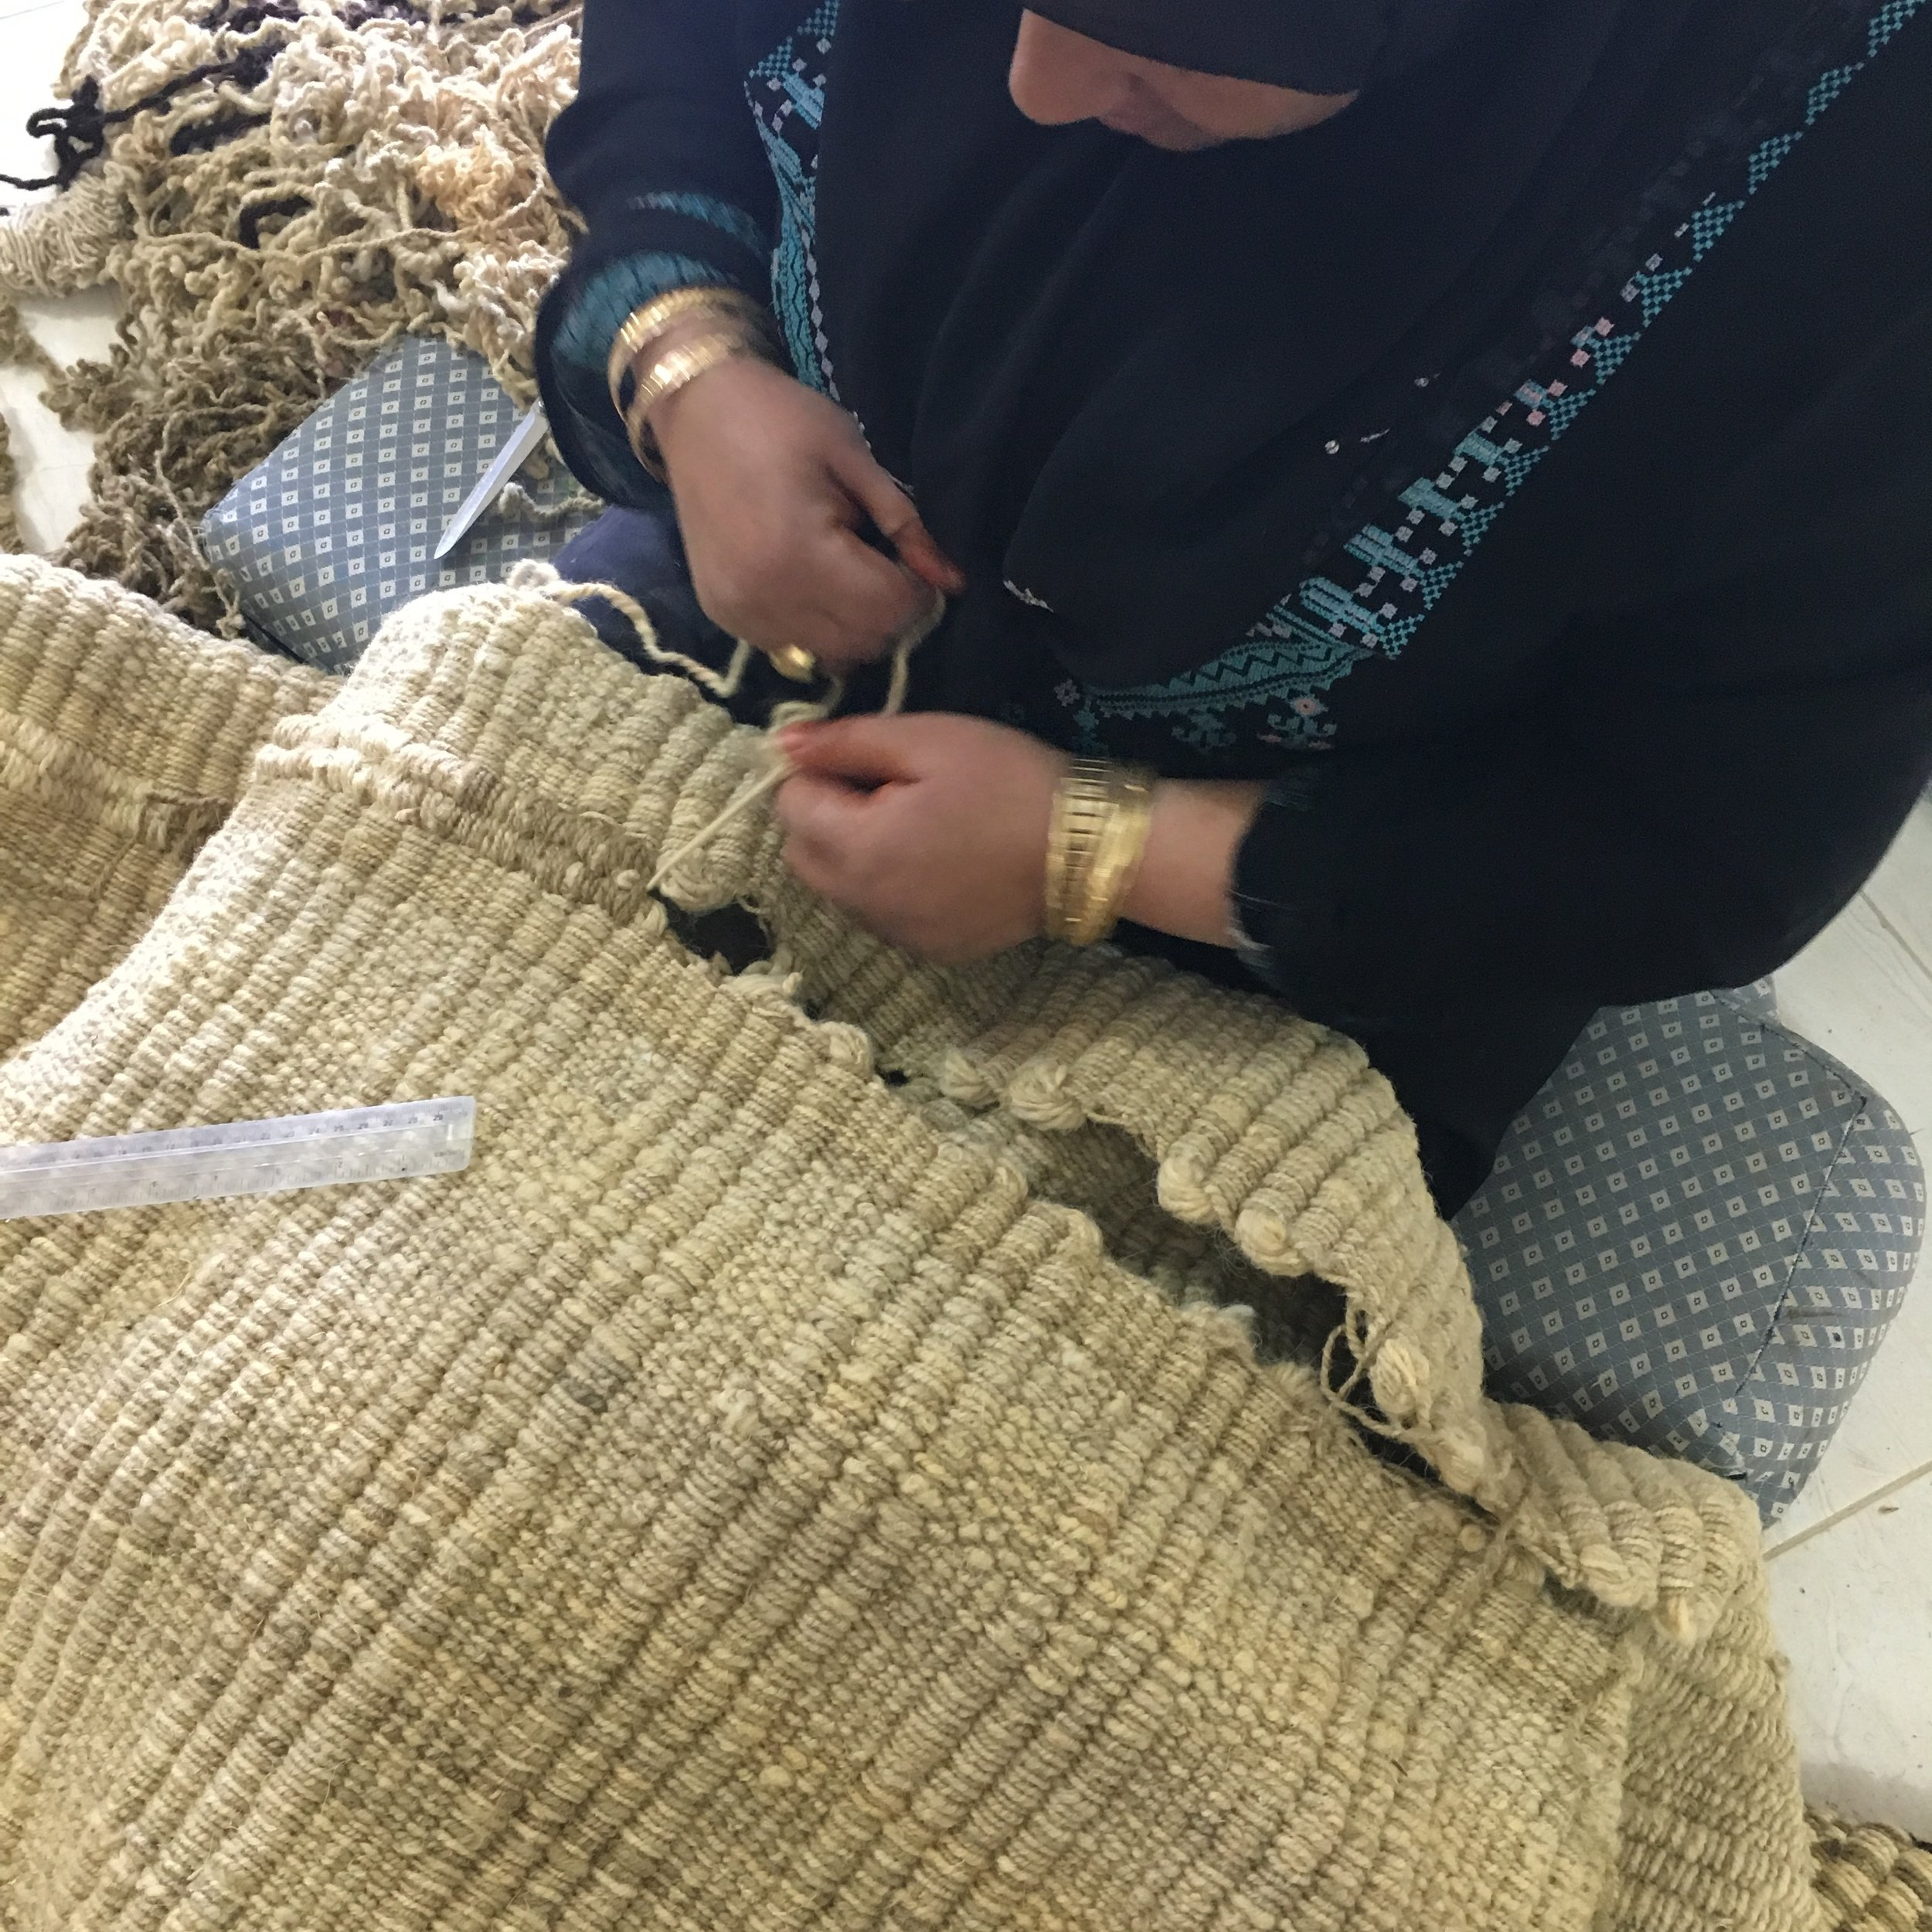 Siham is sewing two strips of women material together in a seam,